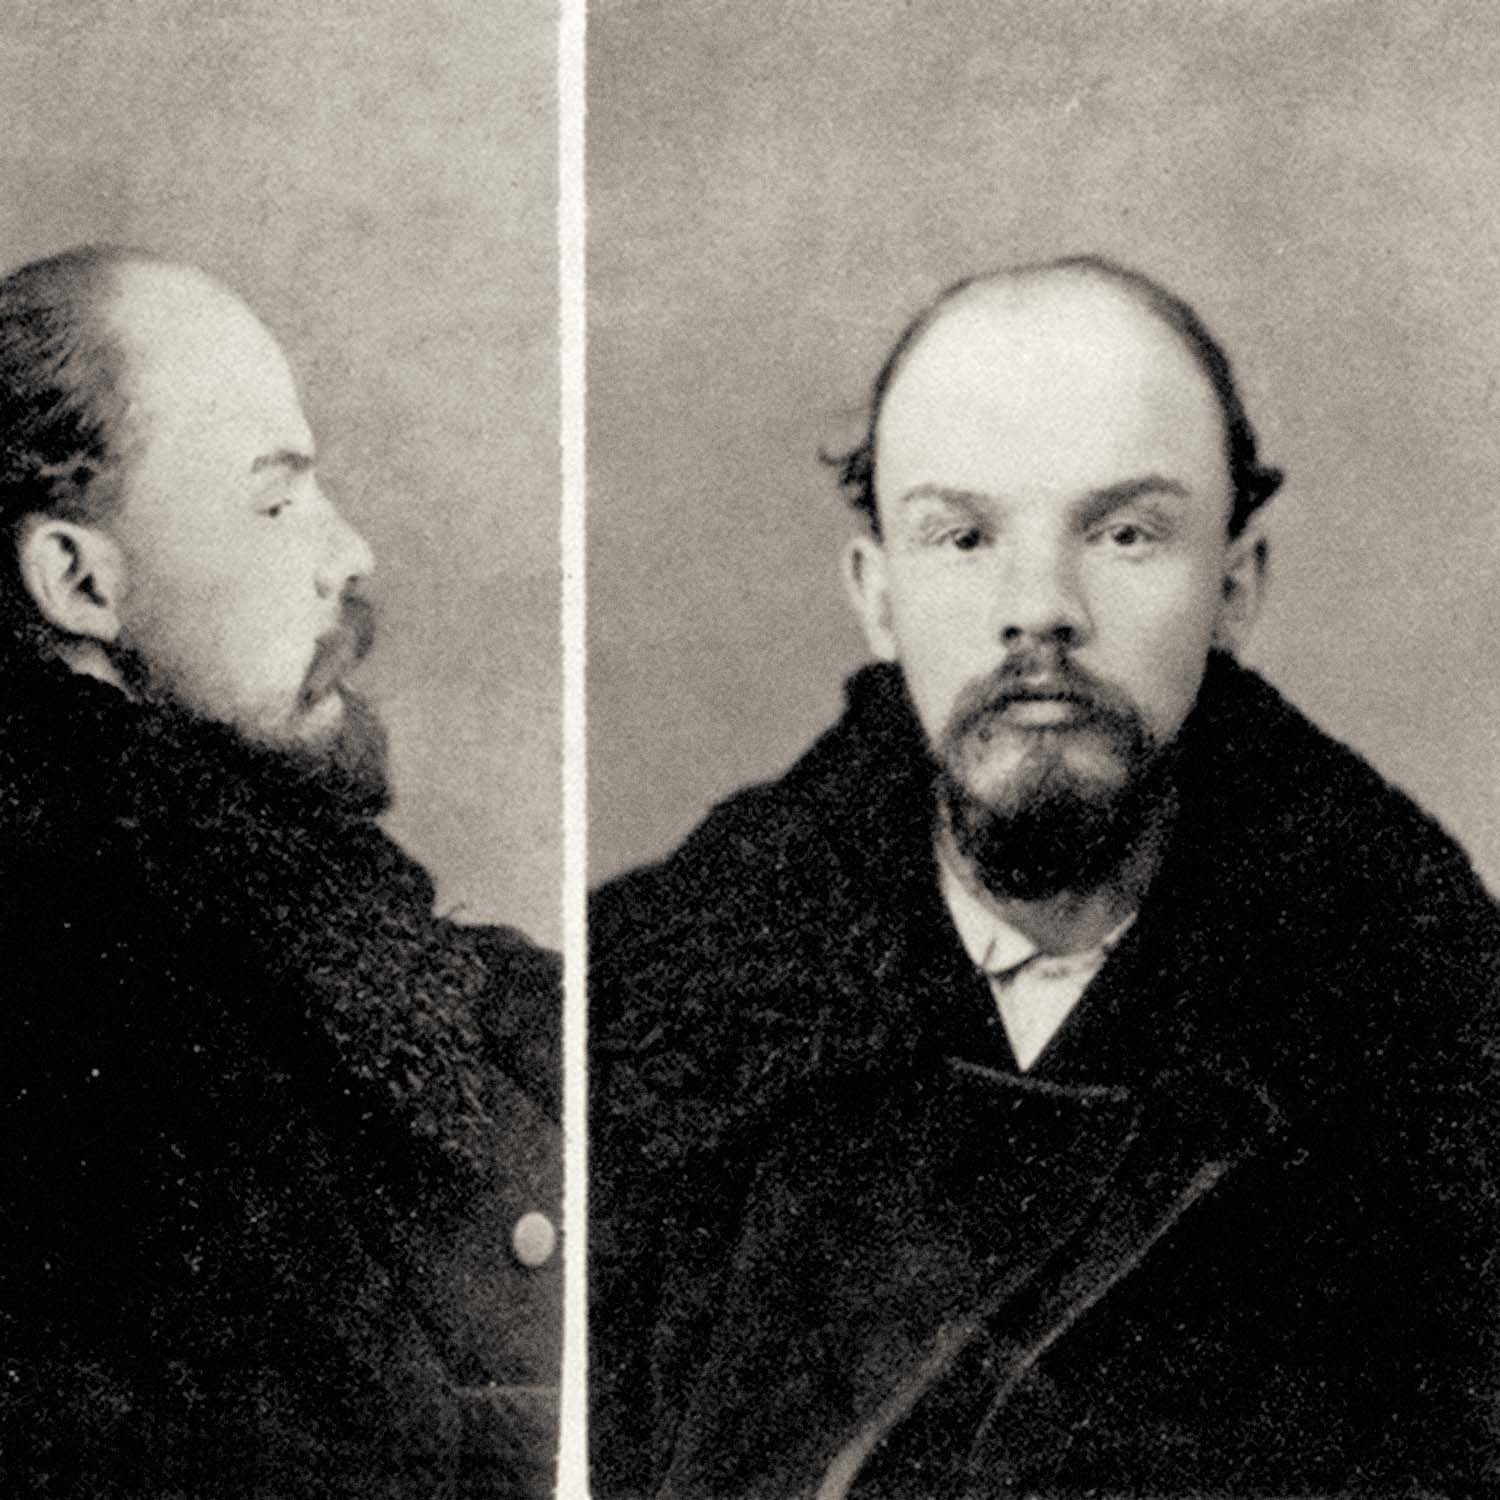 Vladimir Lenin mugshot from 1895, the world's first communist head of state. Lenin was arrested in 1895 and exiled to Siberia.